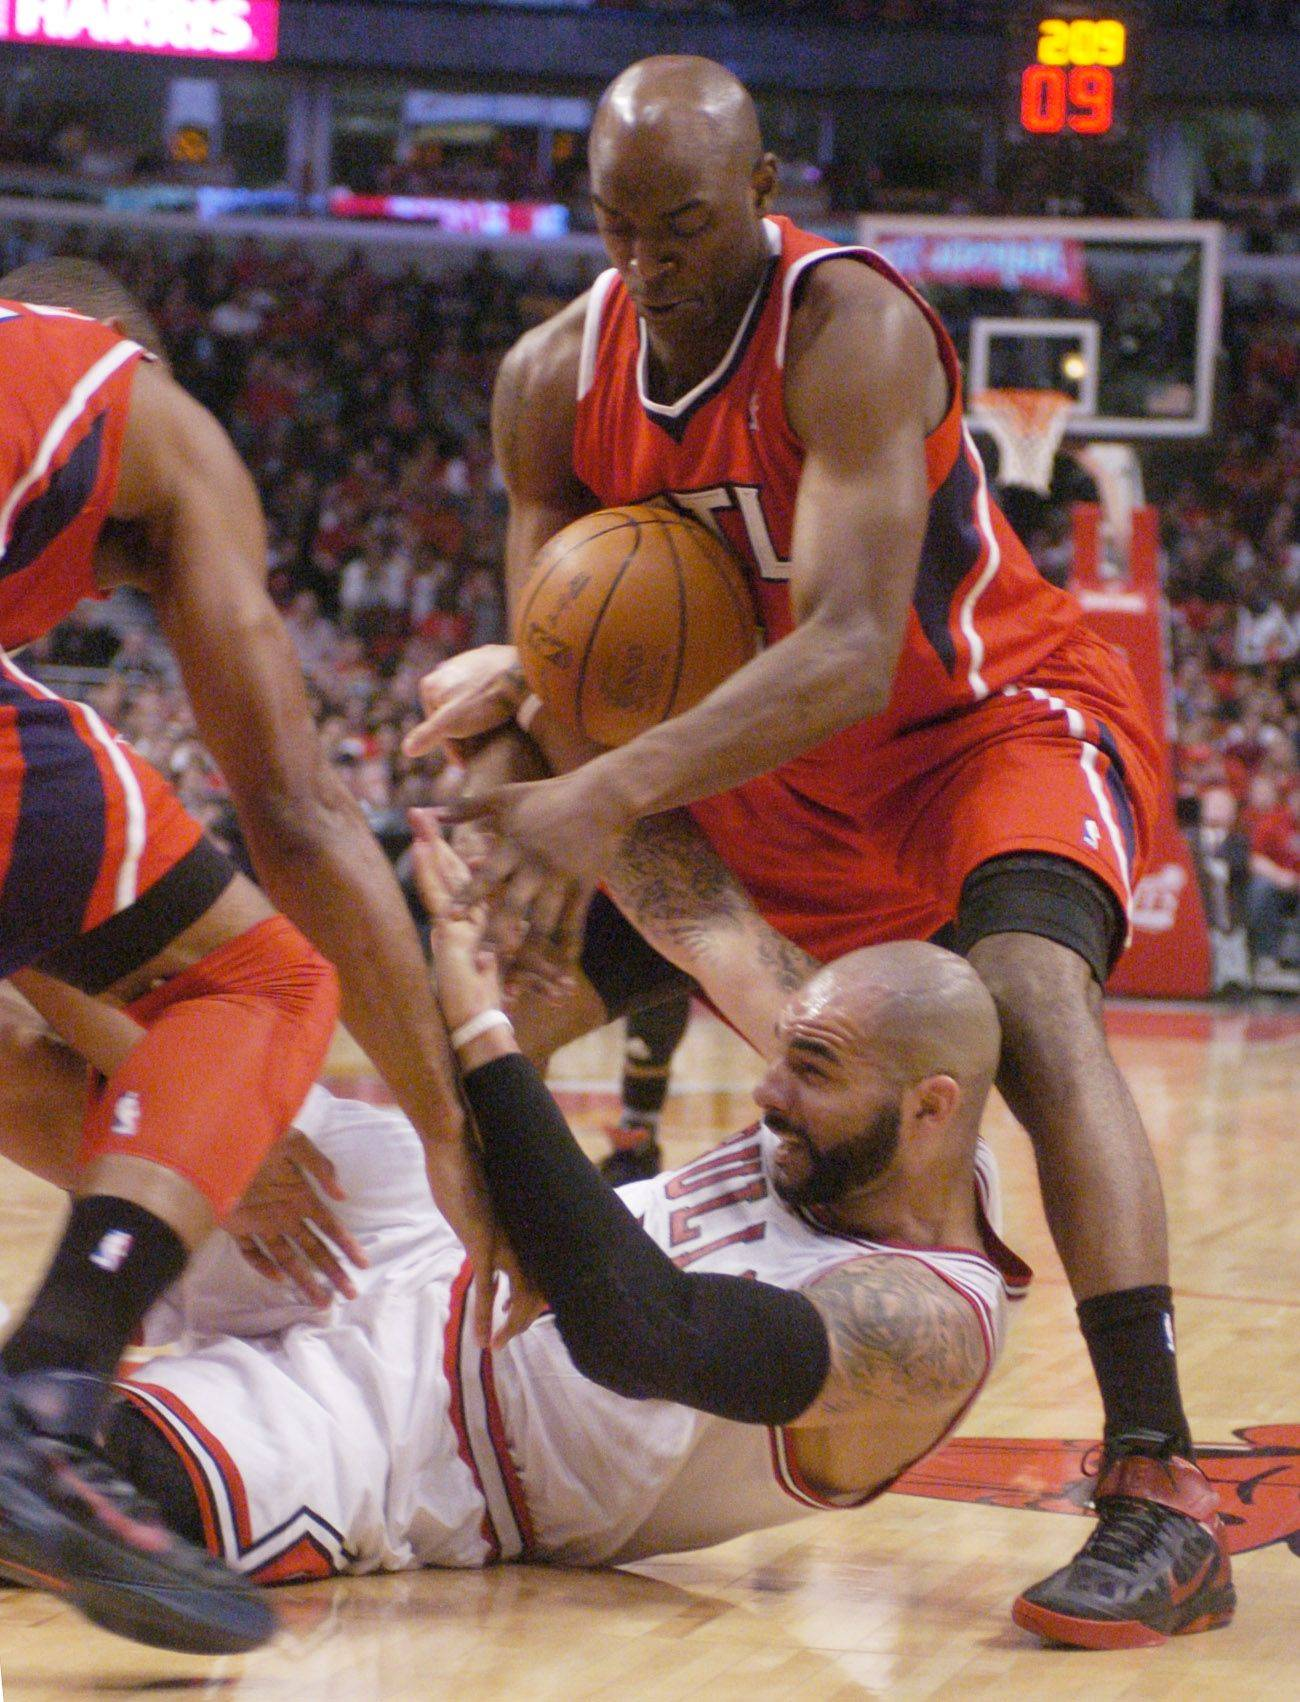 Carlos Boozer of the Bulls loses the ball as he falls between Al Horford, left, and Damien Wilkins of the Atlanta Hawks during Monday's game at the United Center.